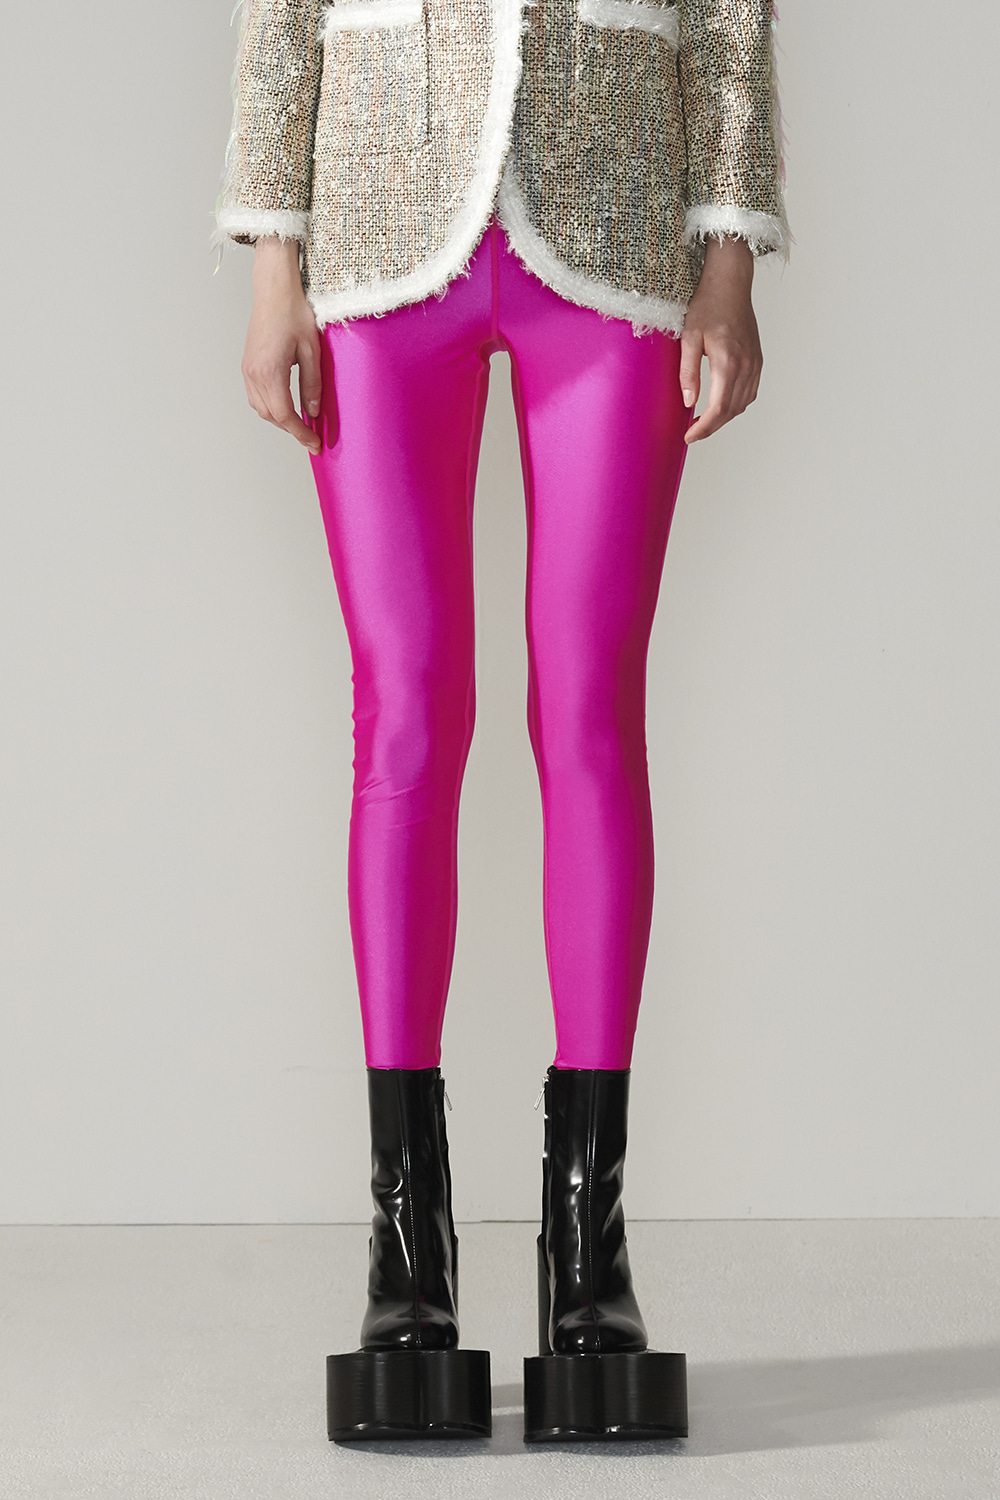 SS21 JEWELLED POINT PINK LEGGINGS